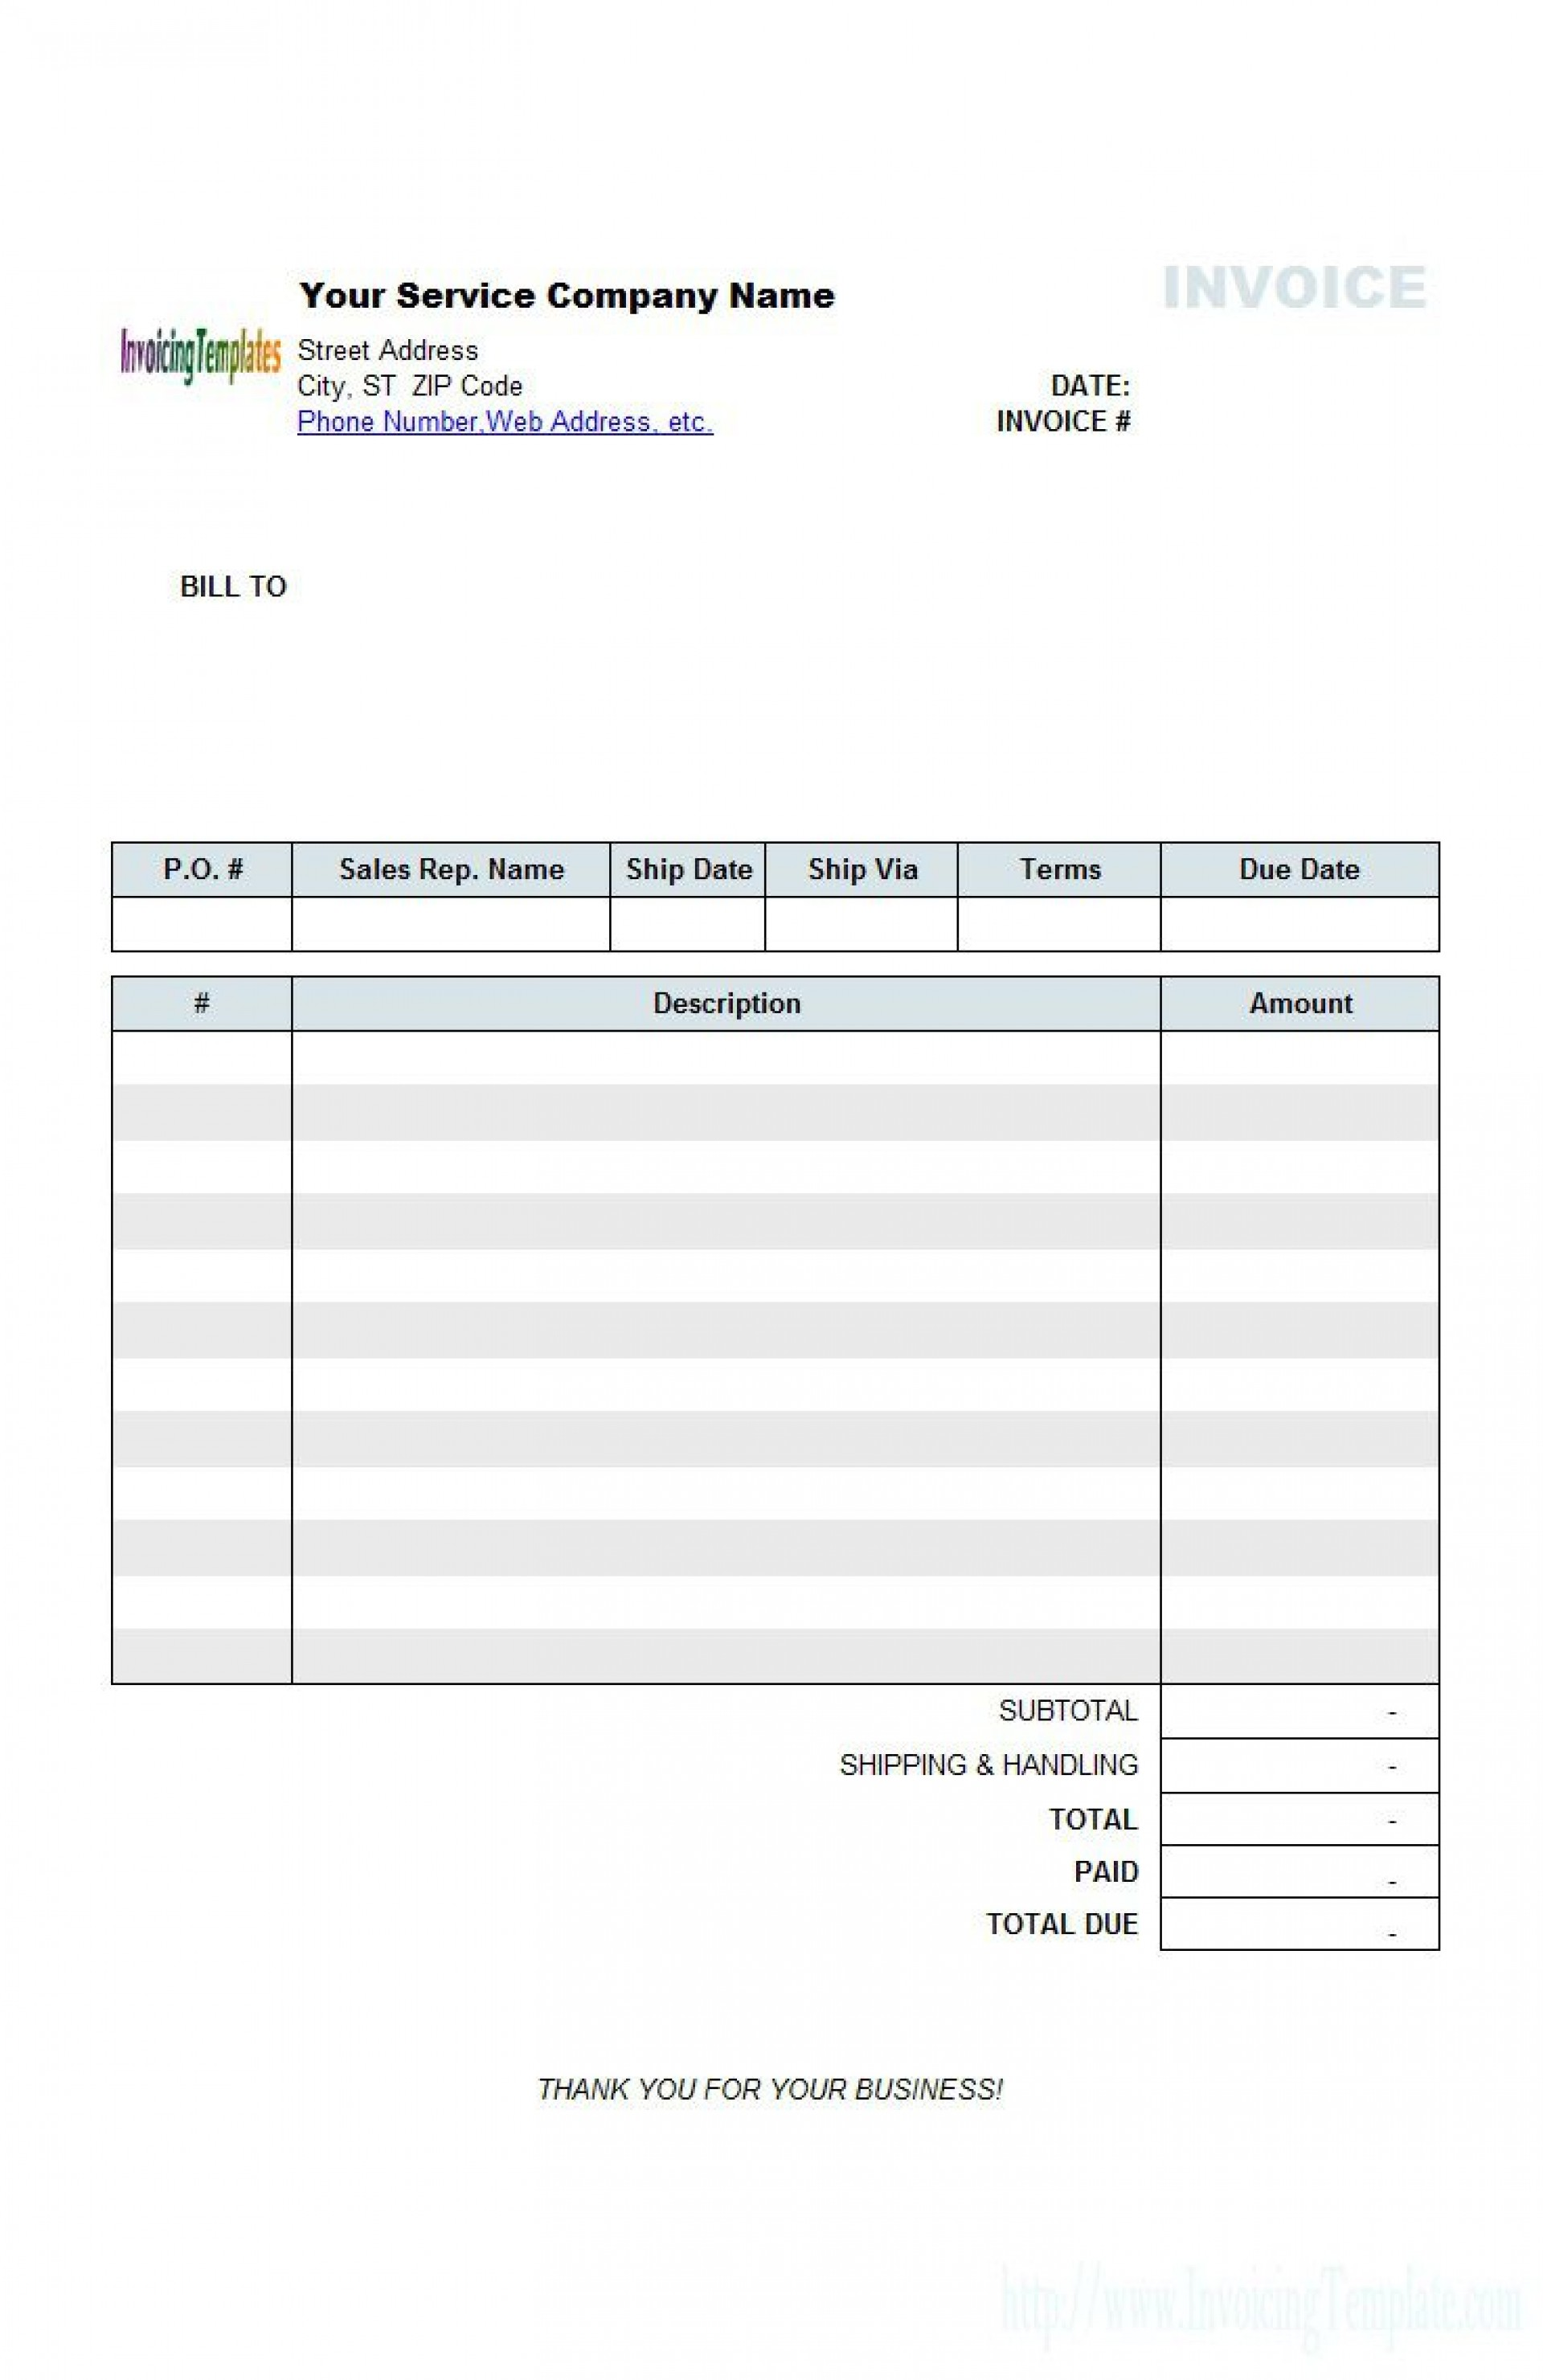 004 Awful Generic Service Invoice Template Picture 1920